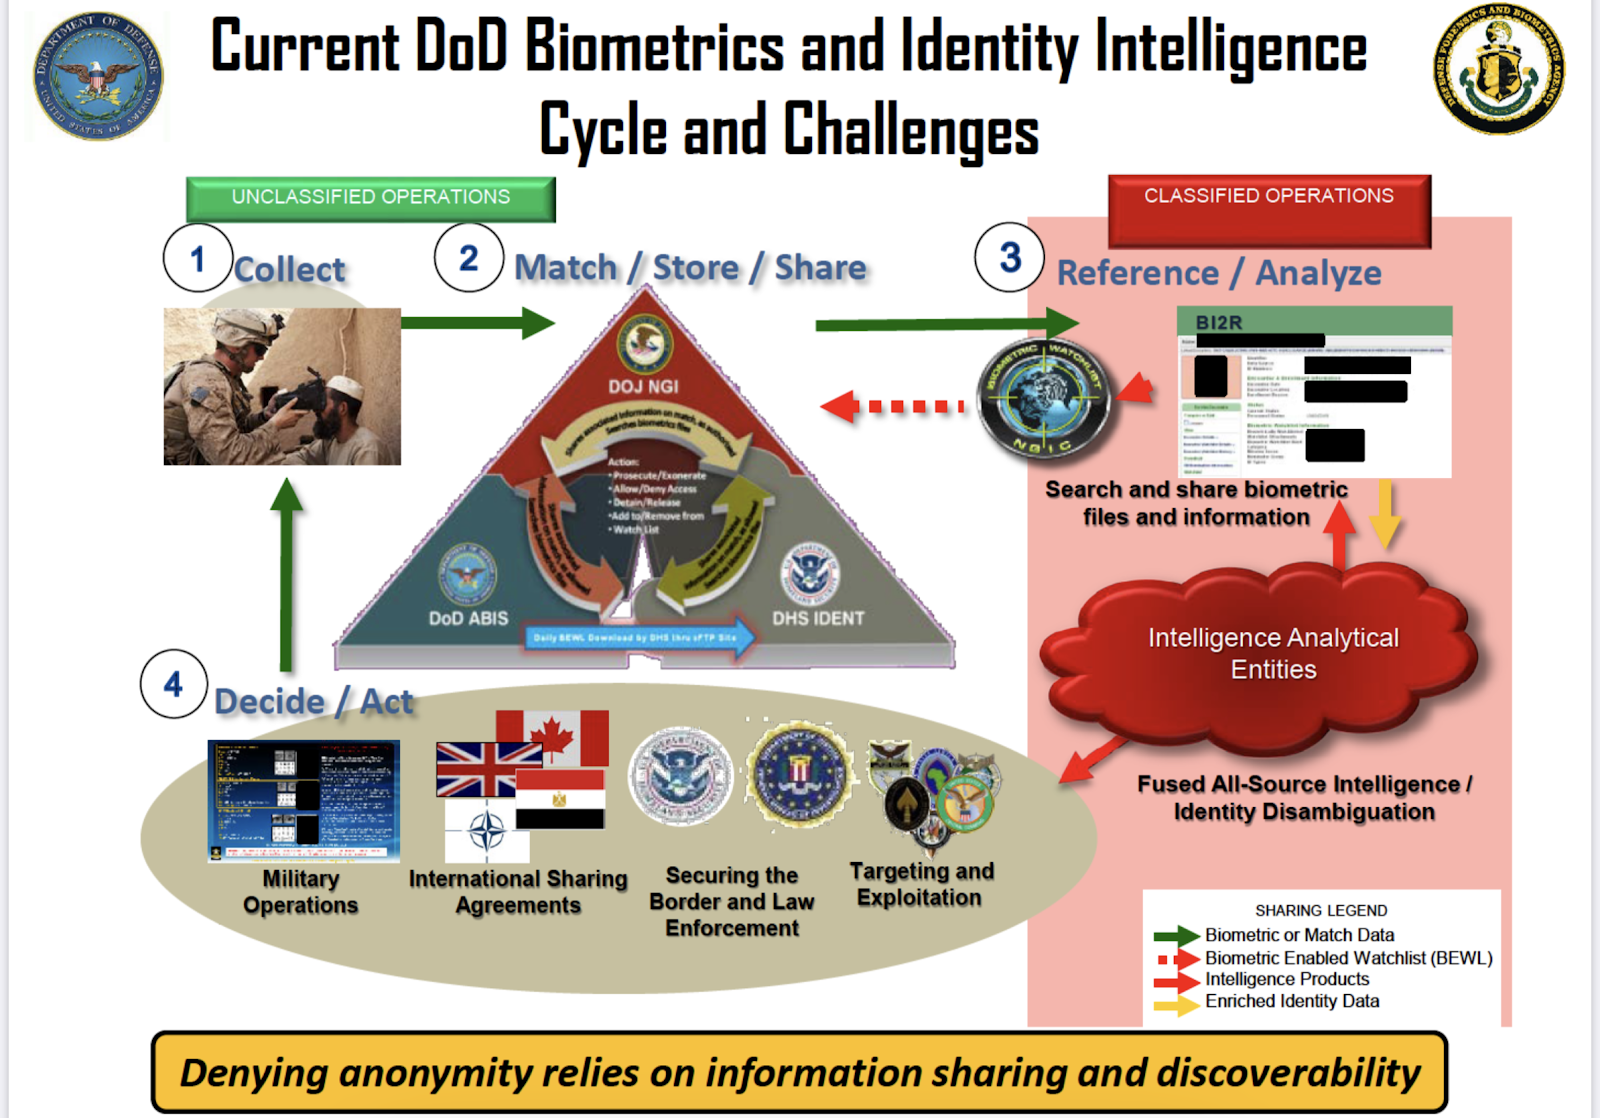 0*RpIsrAnYbV_7hERb This Is How the U.S. Military's Massive Facial Recognition System Works [your]NEWS